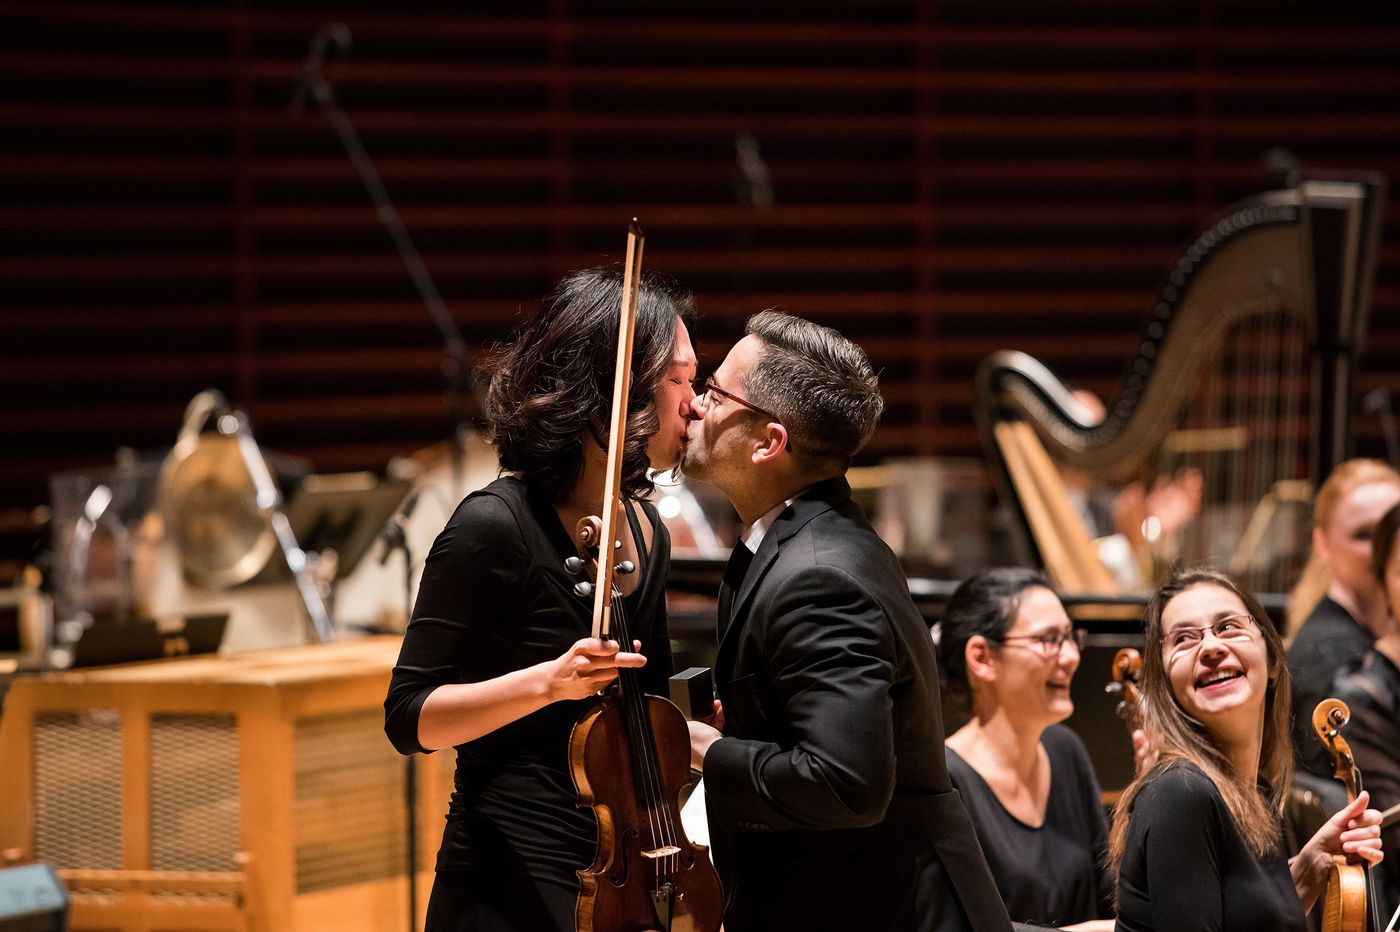 Philadelphia Orchestra couple hits all the right notes in on-stage Valentine's Day proposal